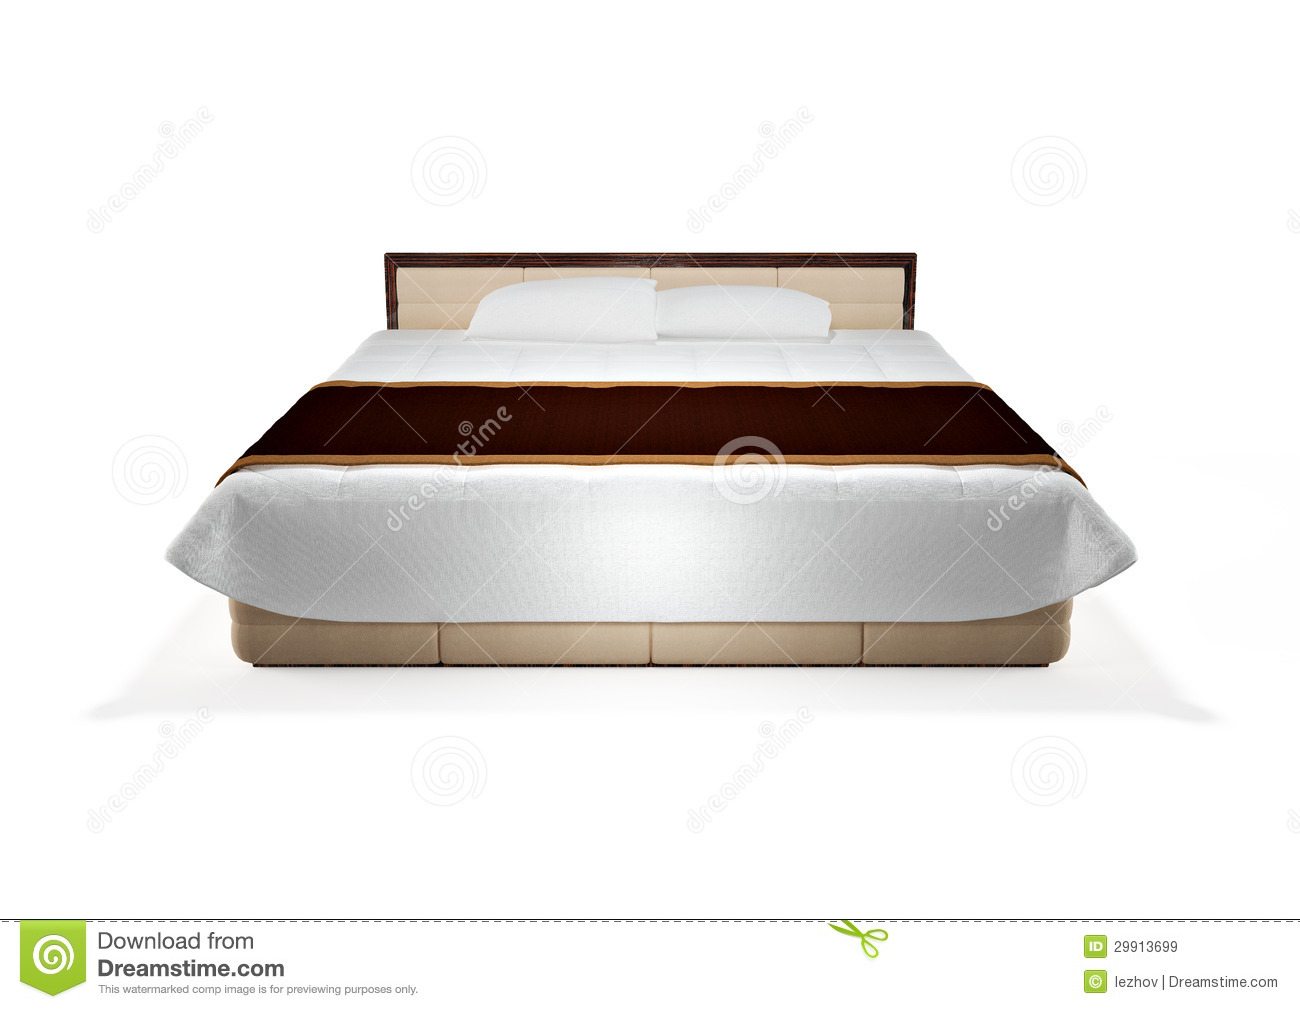 Bed clipart front view Front view White collection Bed